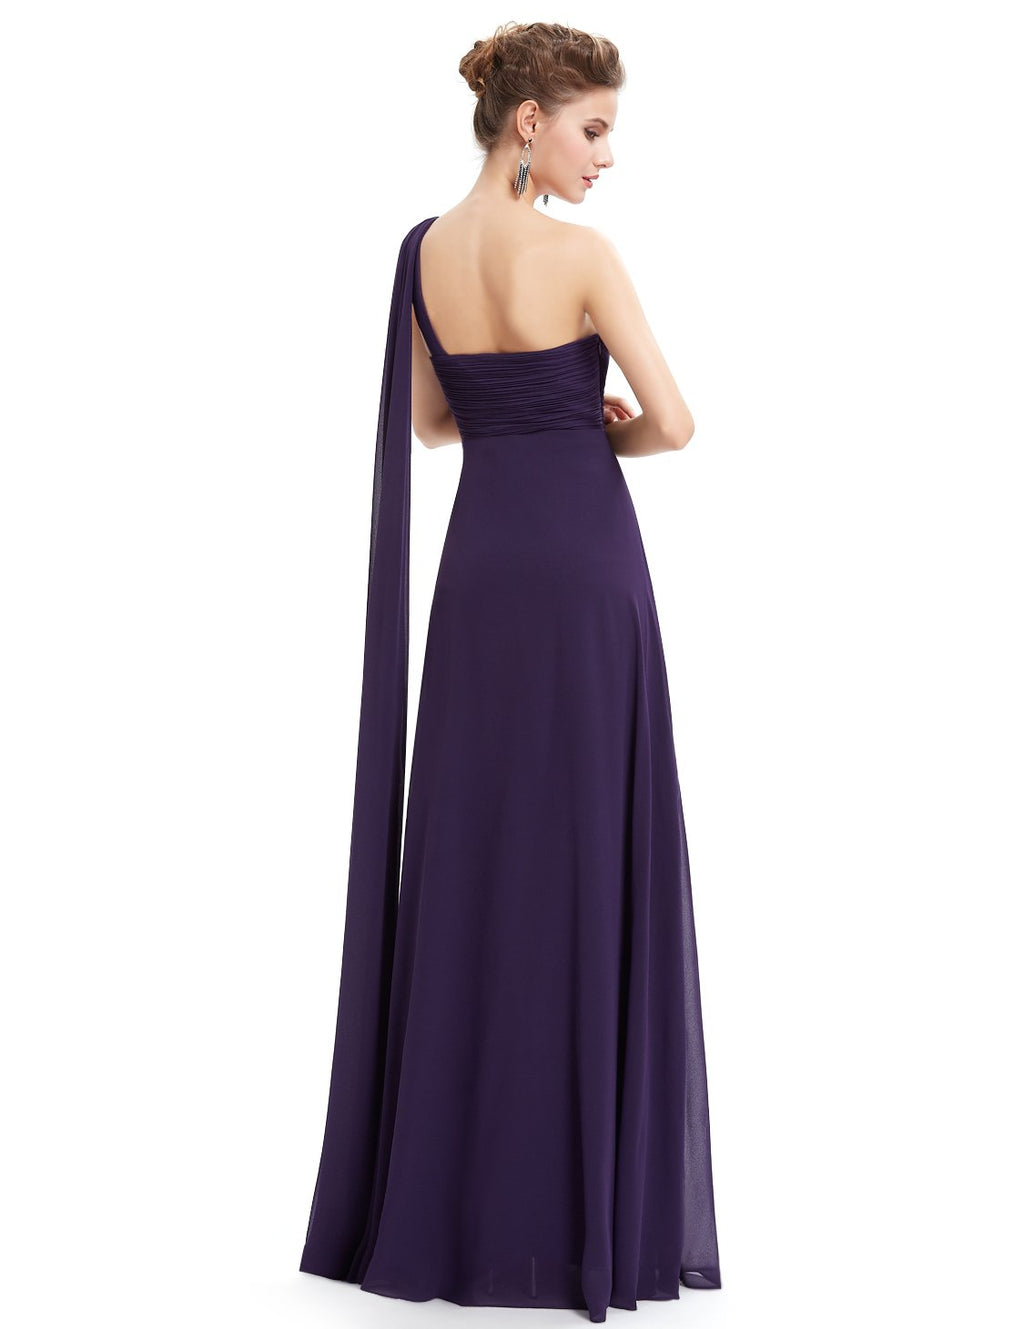 One Shoulder Simple Long Party Dress Dark Purple